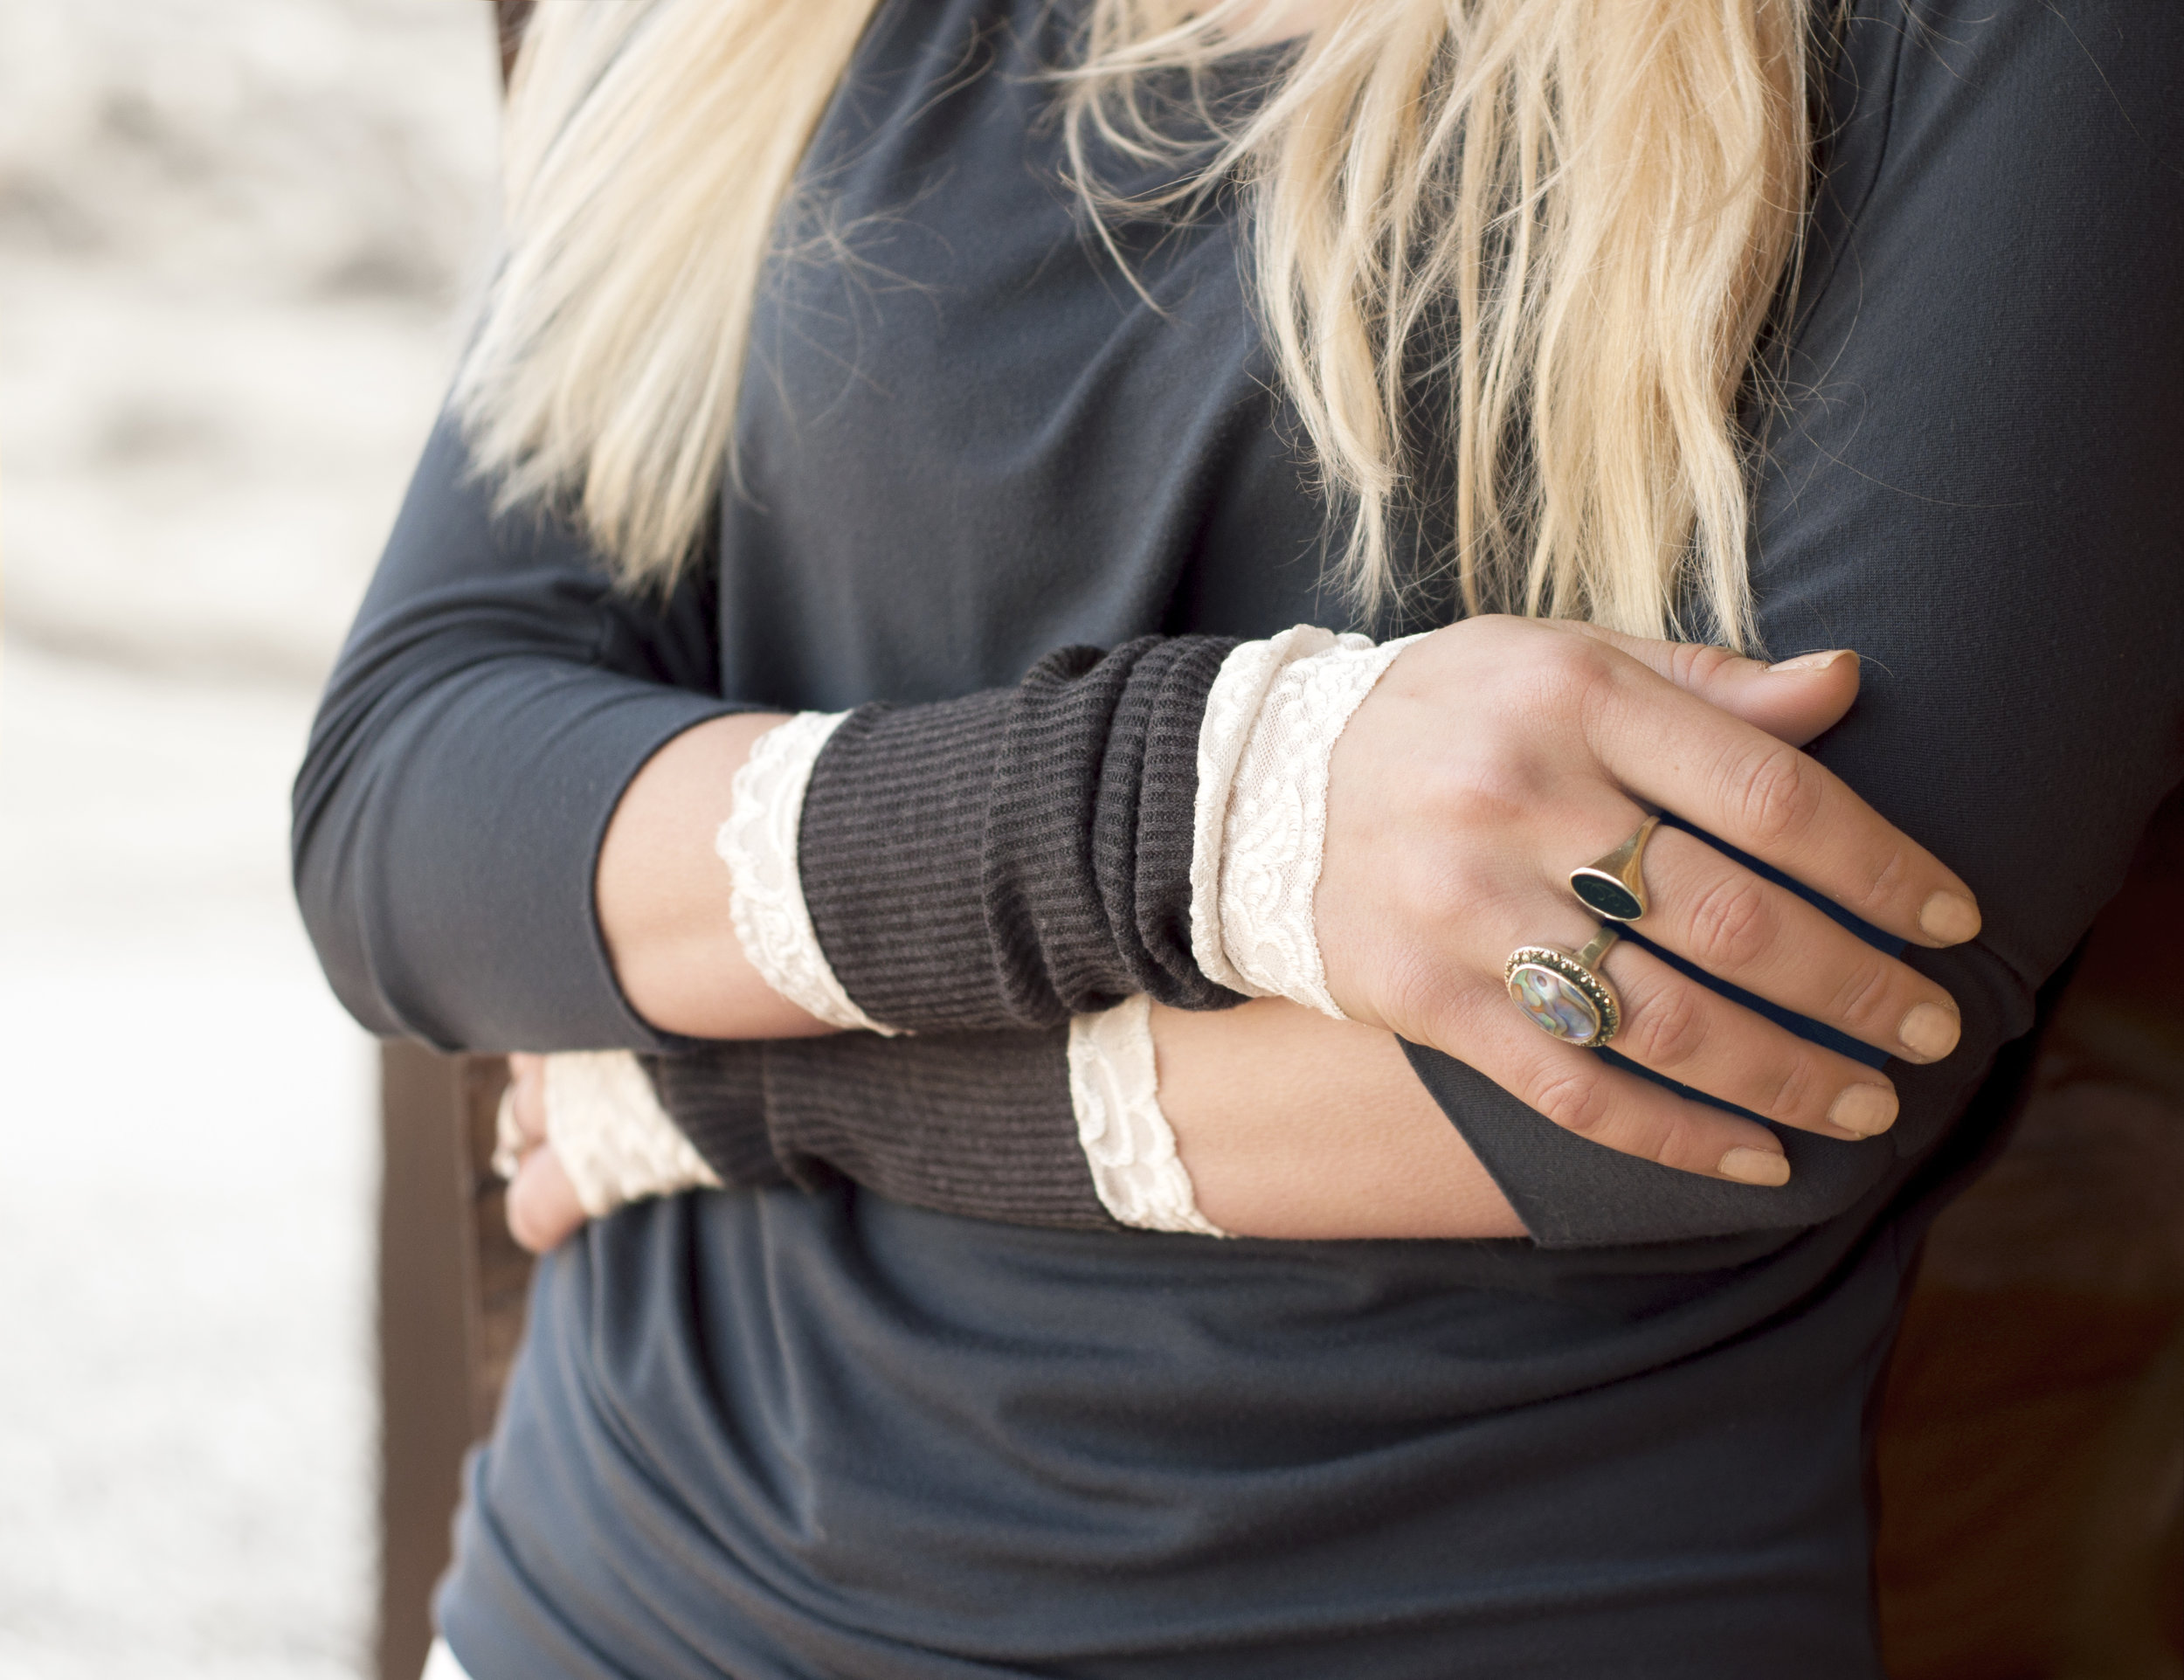 charcoal-sweater-knit-ribbed-knit-arm-warmers-fingerless-gloves-handmade-stretch-forgotten-cotton.jpg